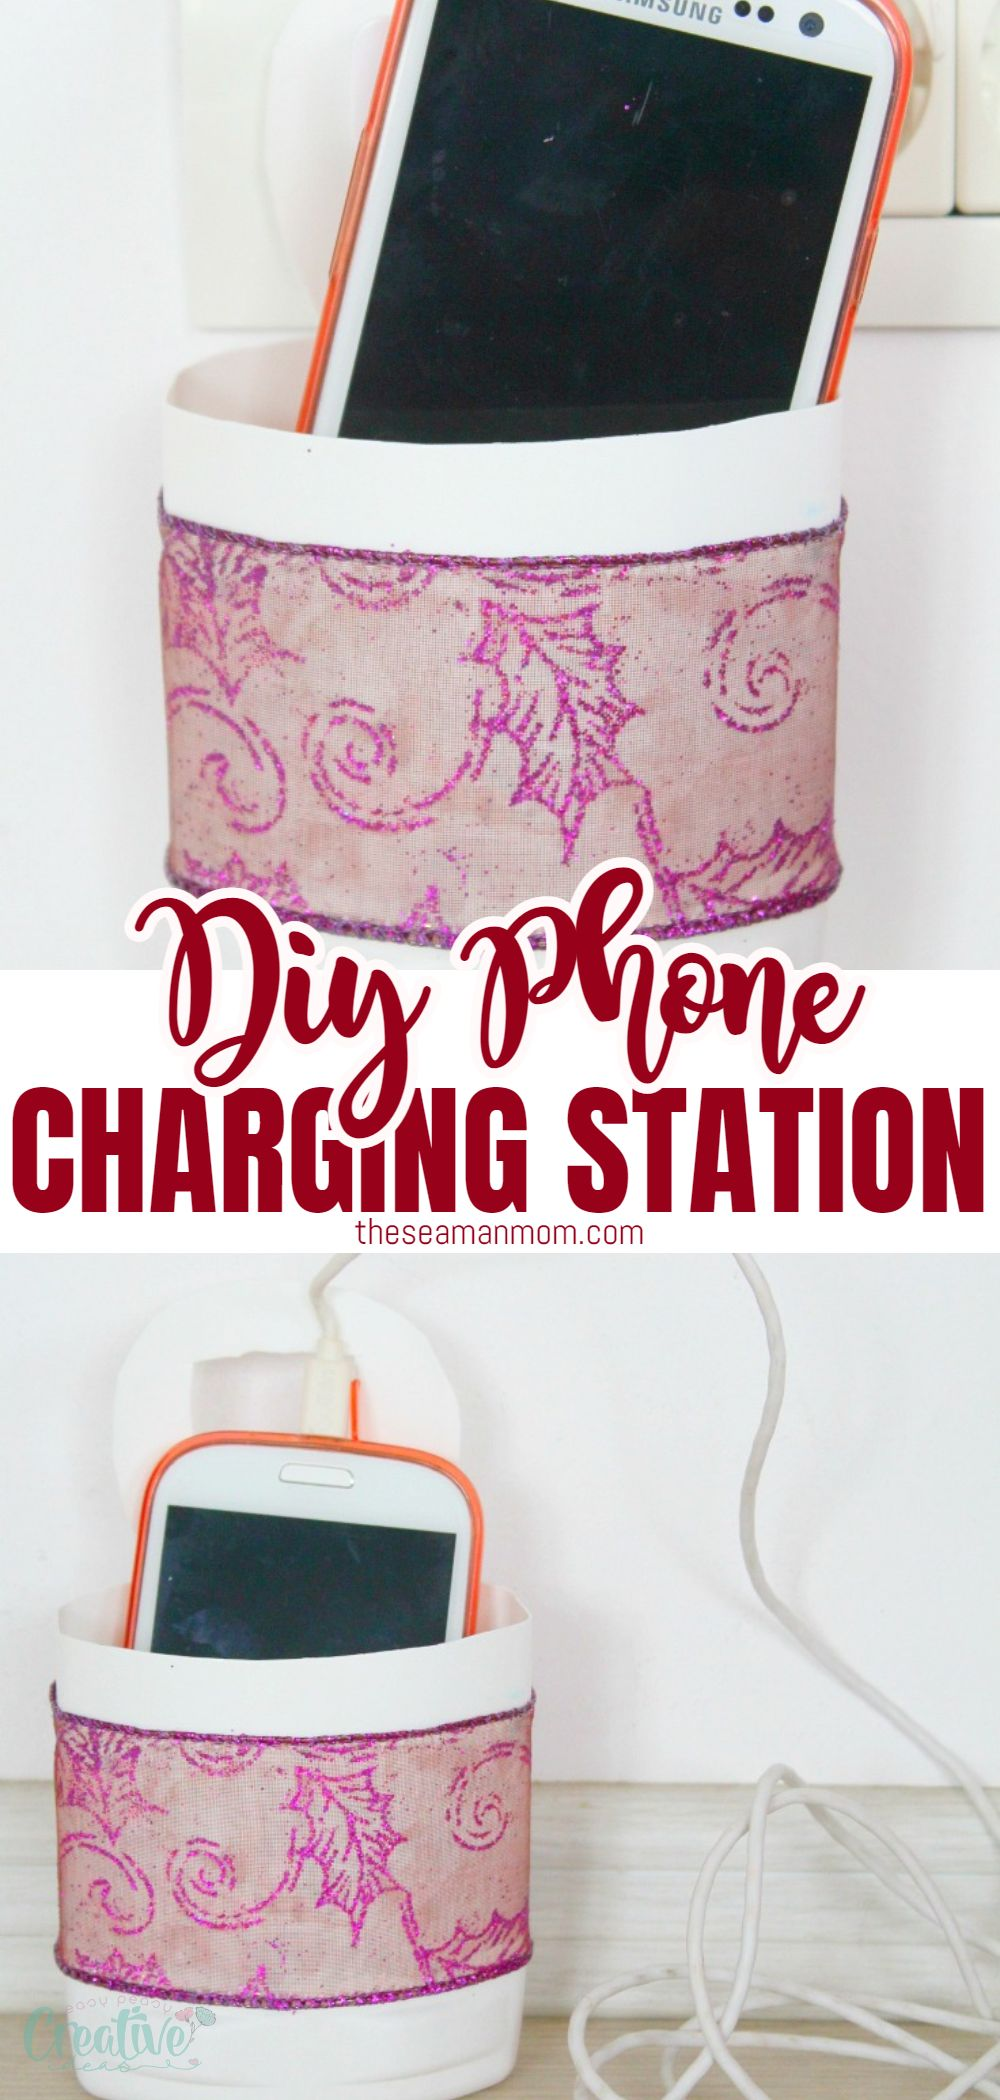 Creating your own DIY Phone Charging Station has never been easier with this simple & quick tutorial! Great recycling project and a lovely gift idea too! via @petroneagu